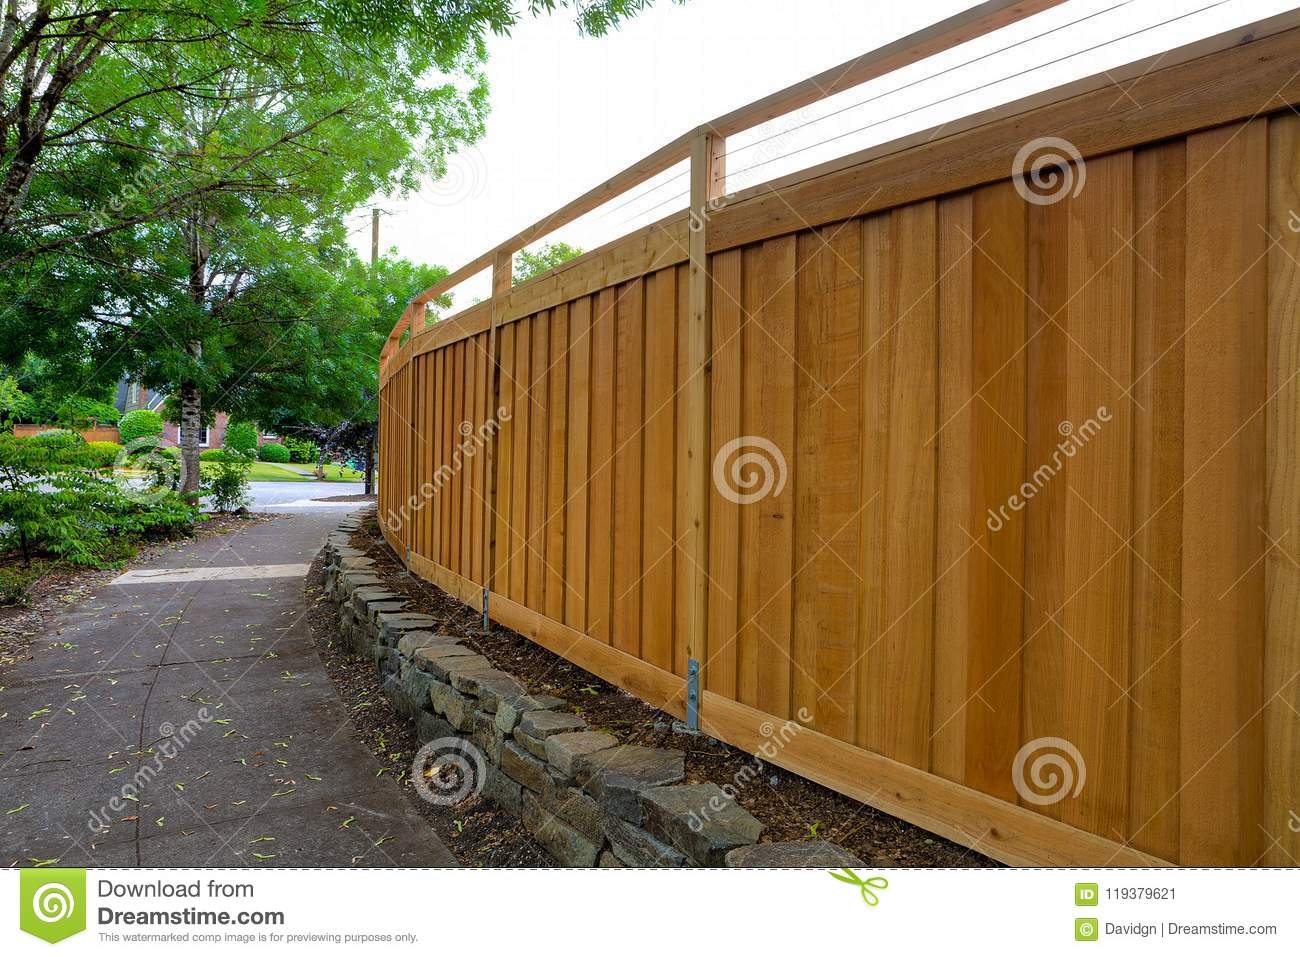 Download New Cedar Wood Fencing Around Backyard Around House Stock Image - Image of house, path: 119379621